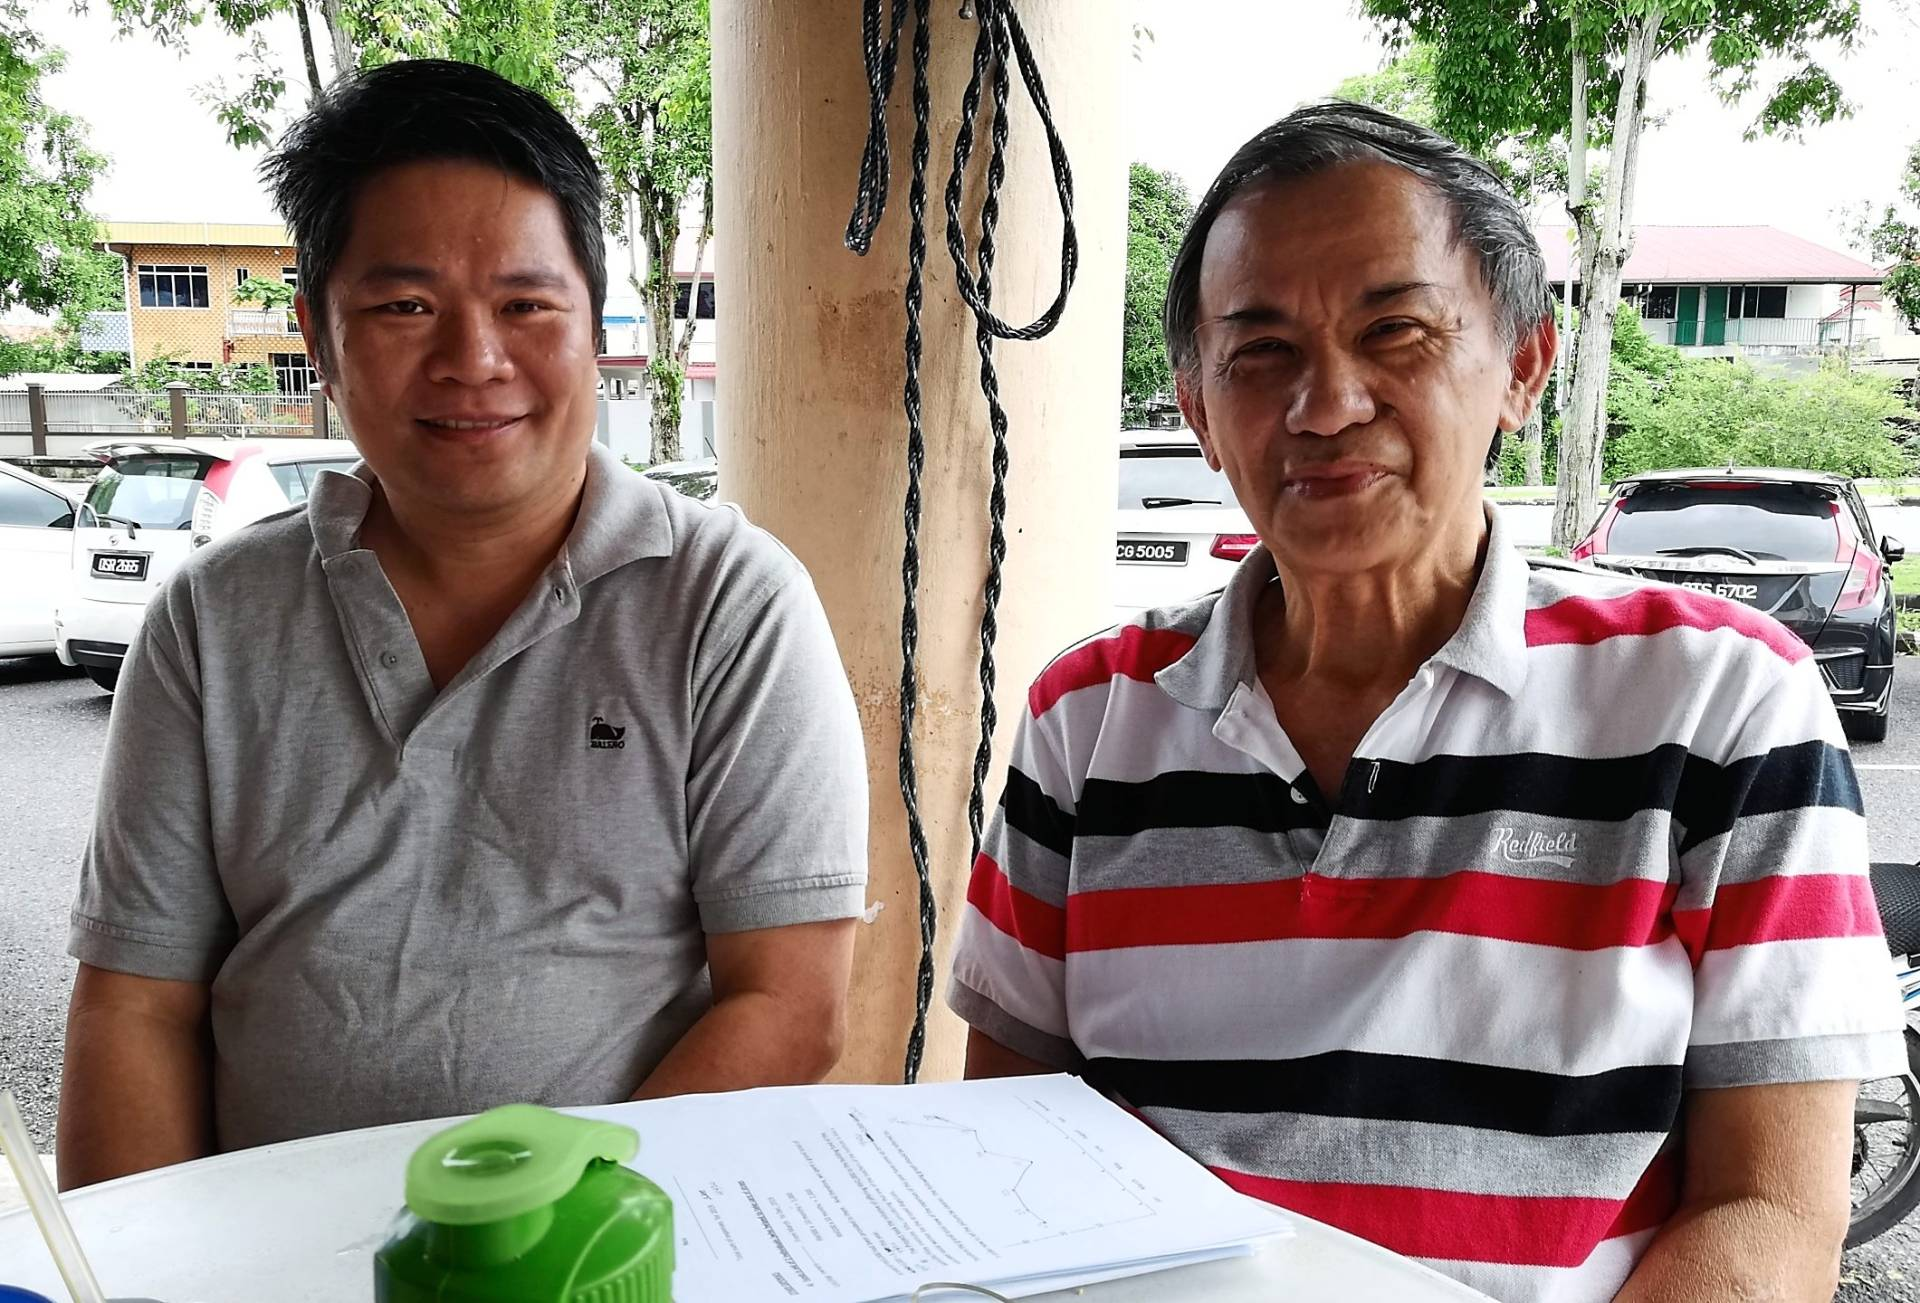 Wong (right) with Shaw. They are appealing for public support to continue with the volunteer-based spaying and neutering of cats and dogs.